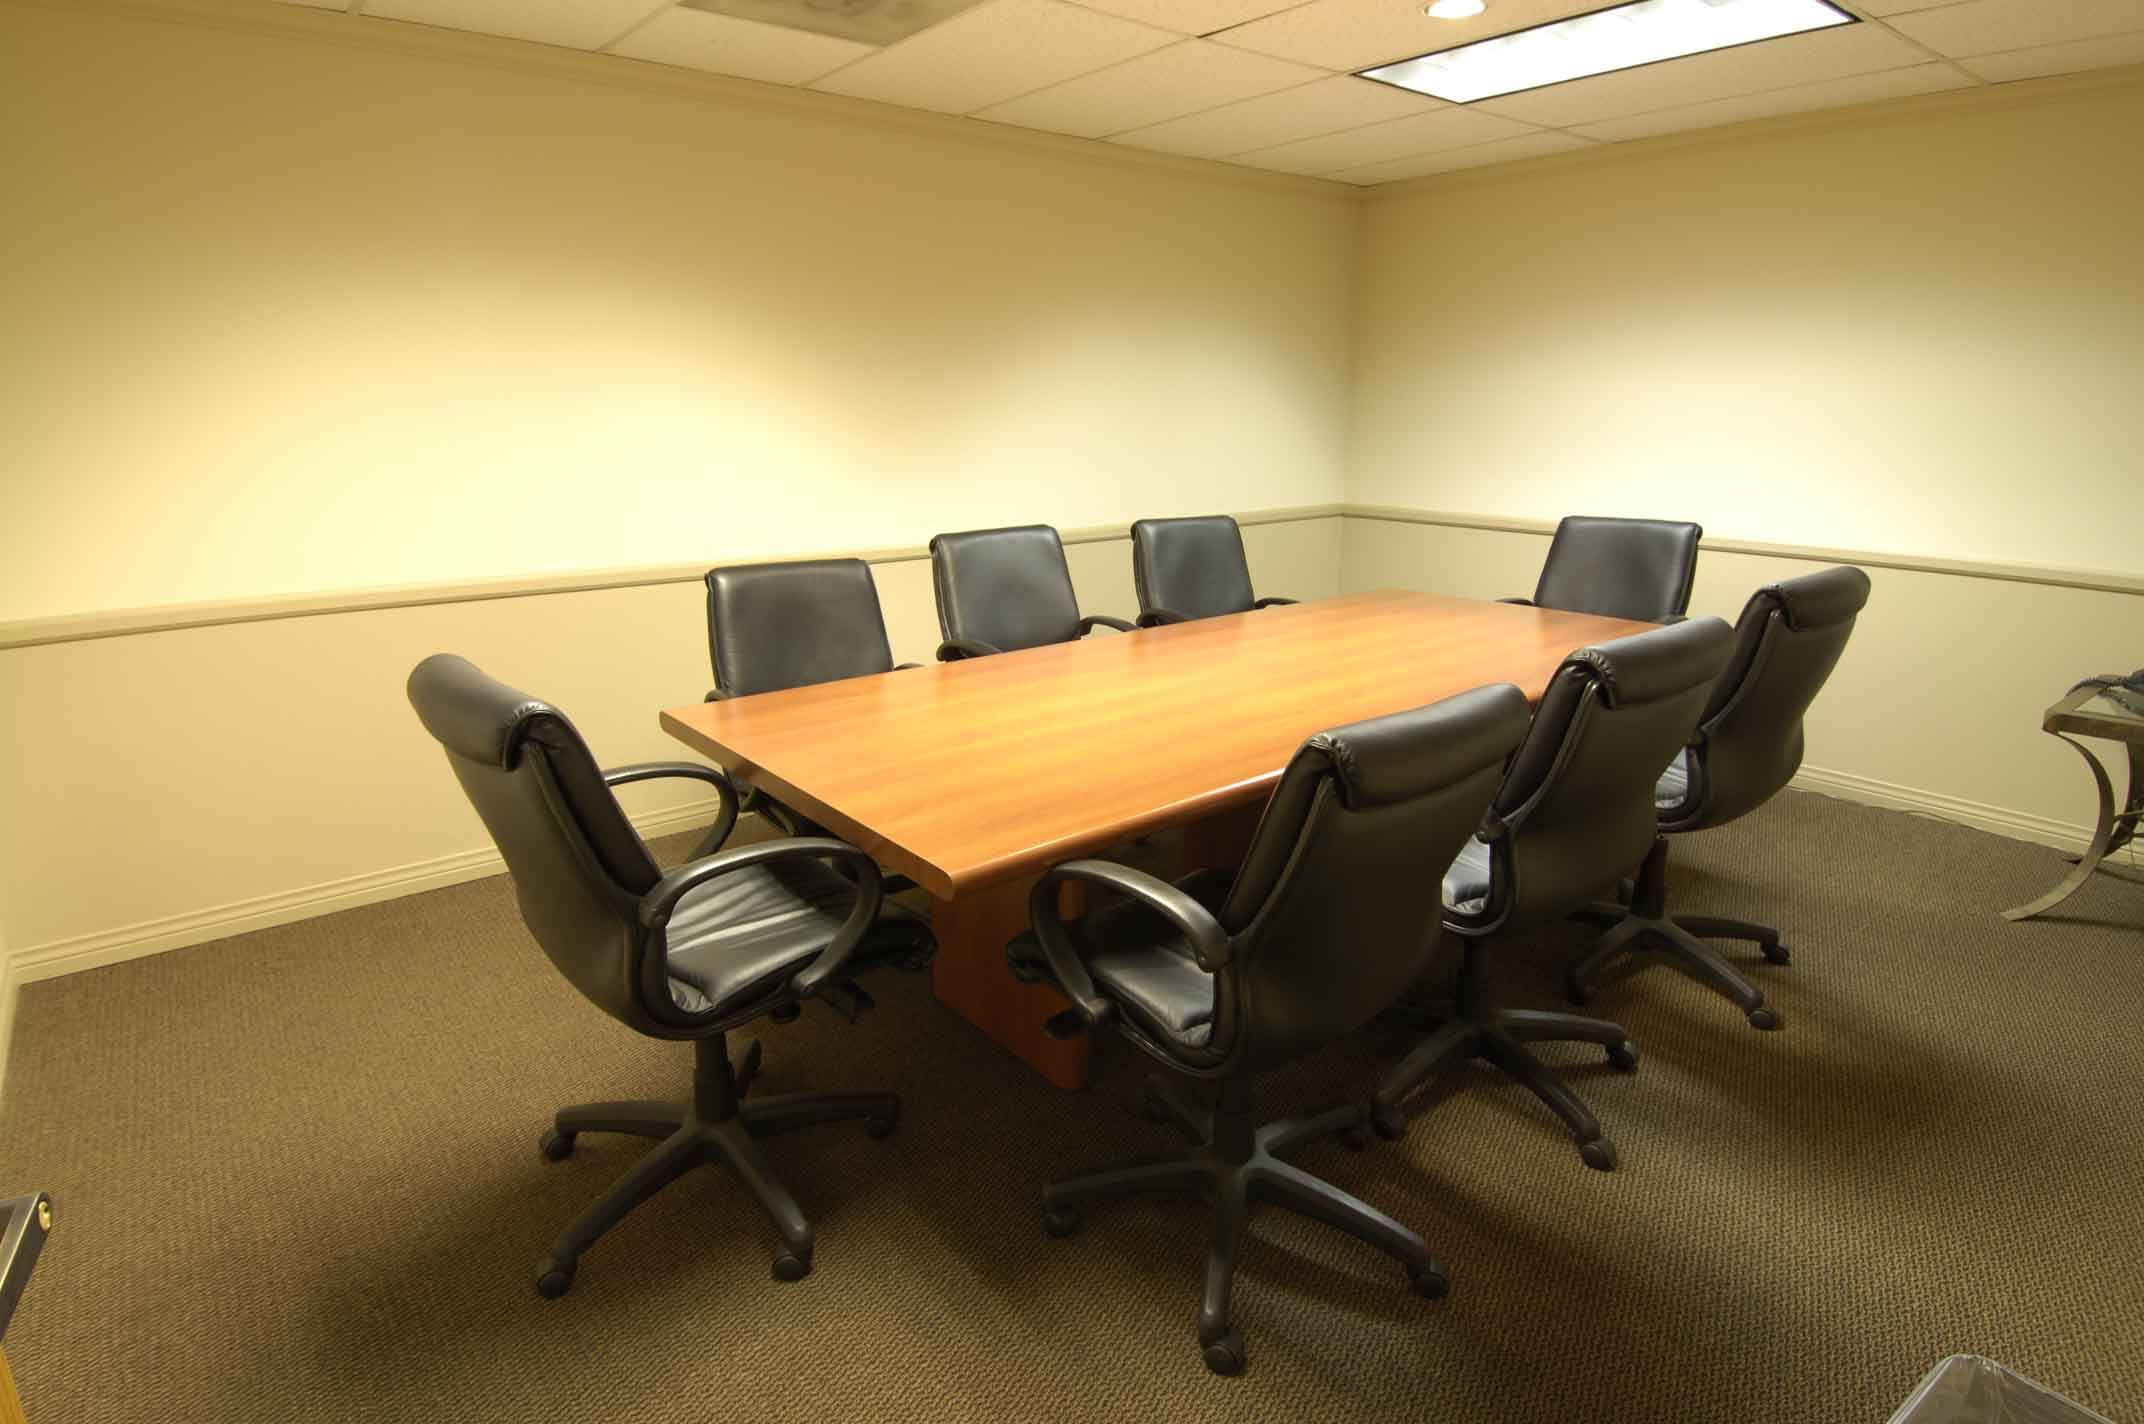 Interior Designs,Simple Office Meeting Room Decor With ...